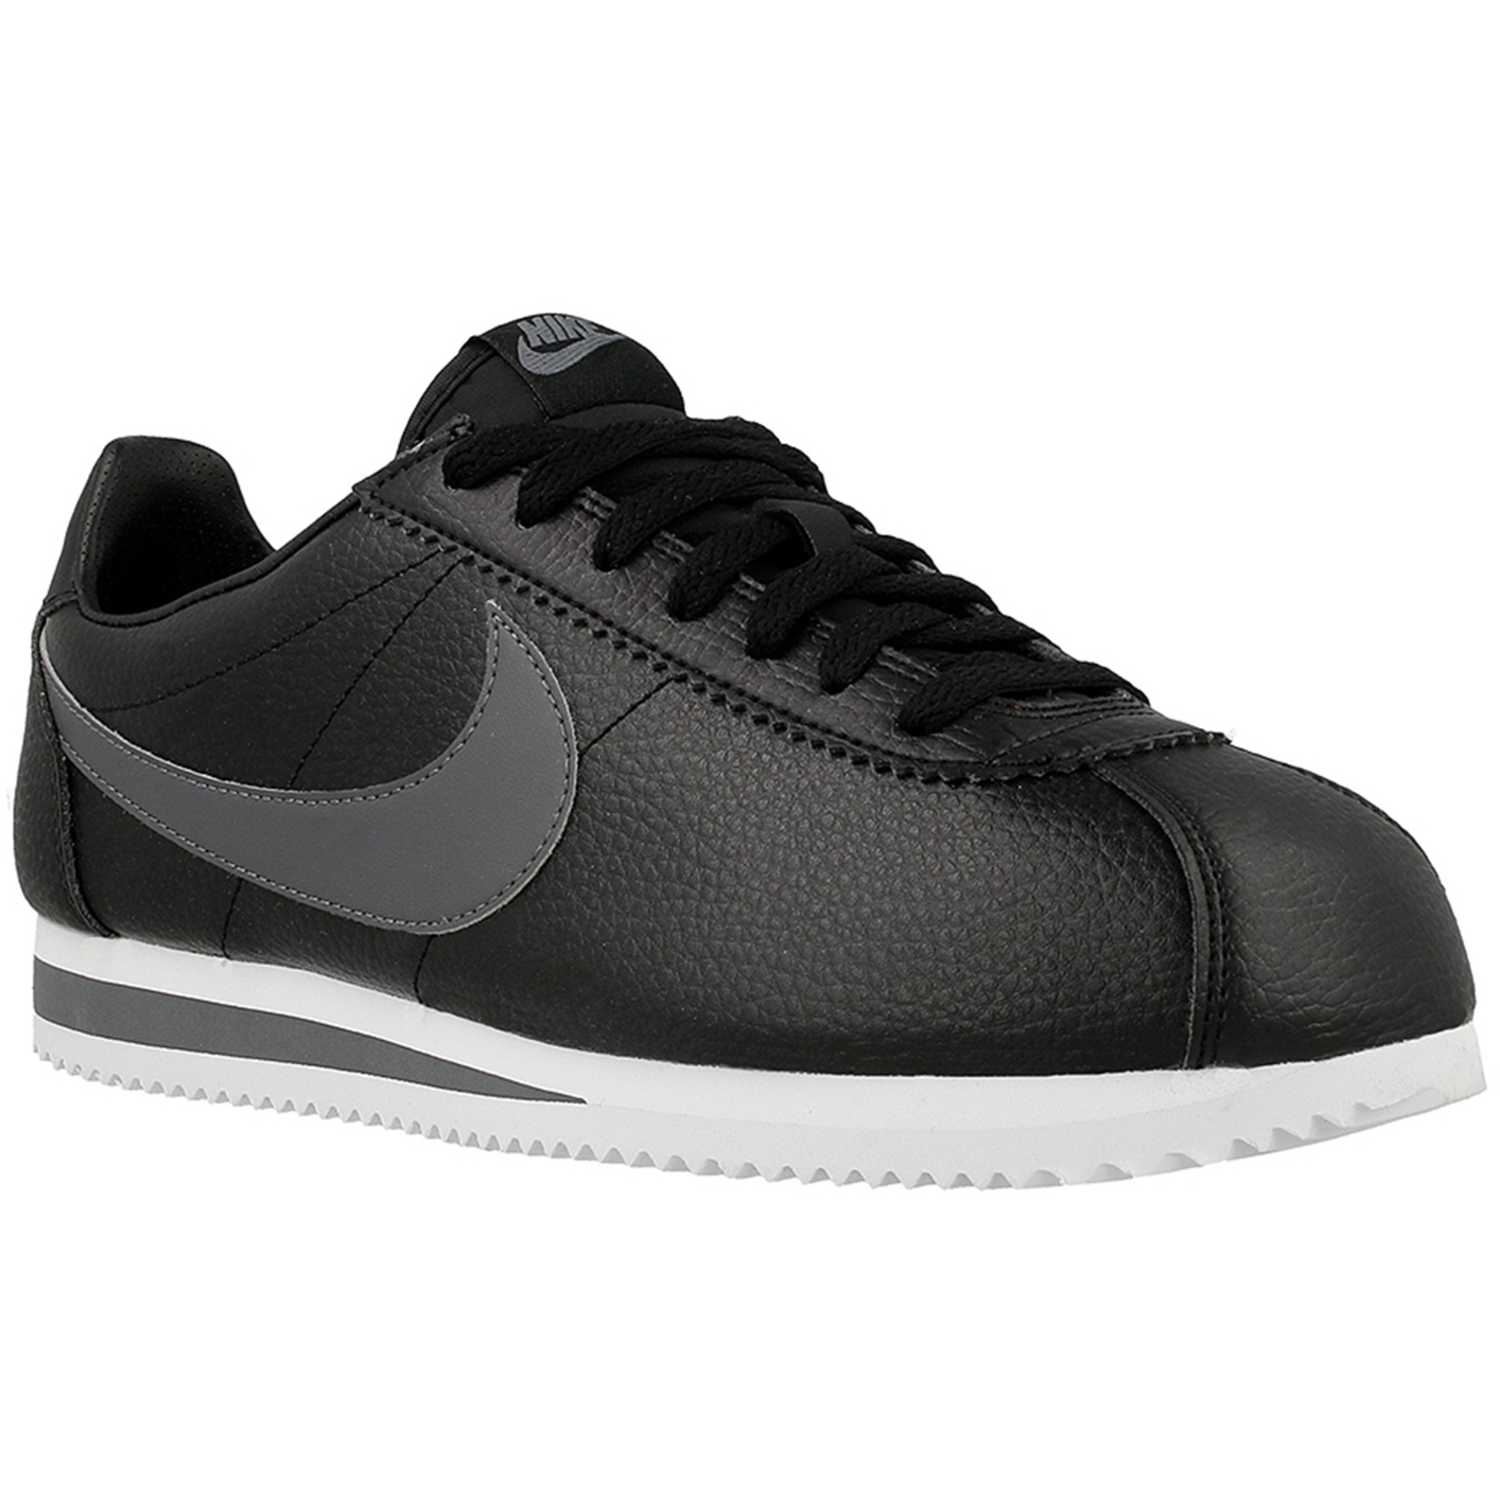 Nike classic cortez leather NEGRO / GRIS Walking